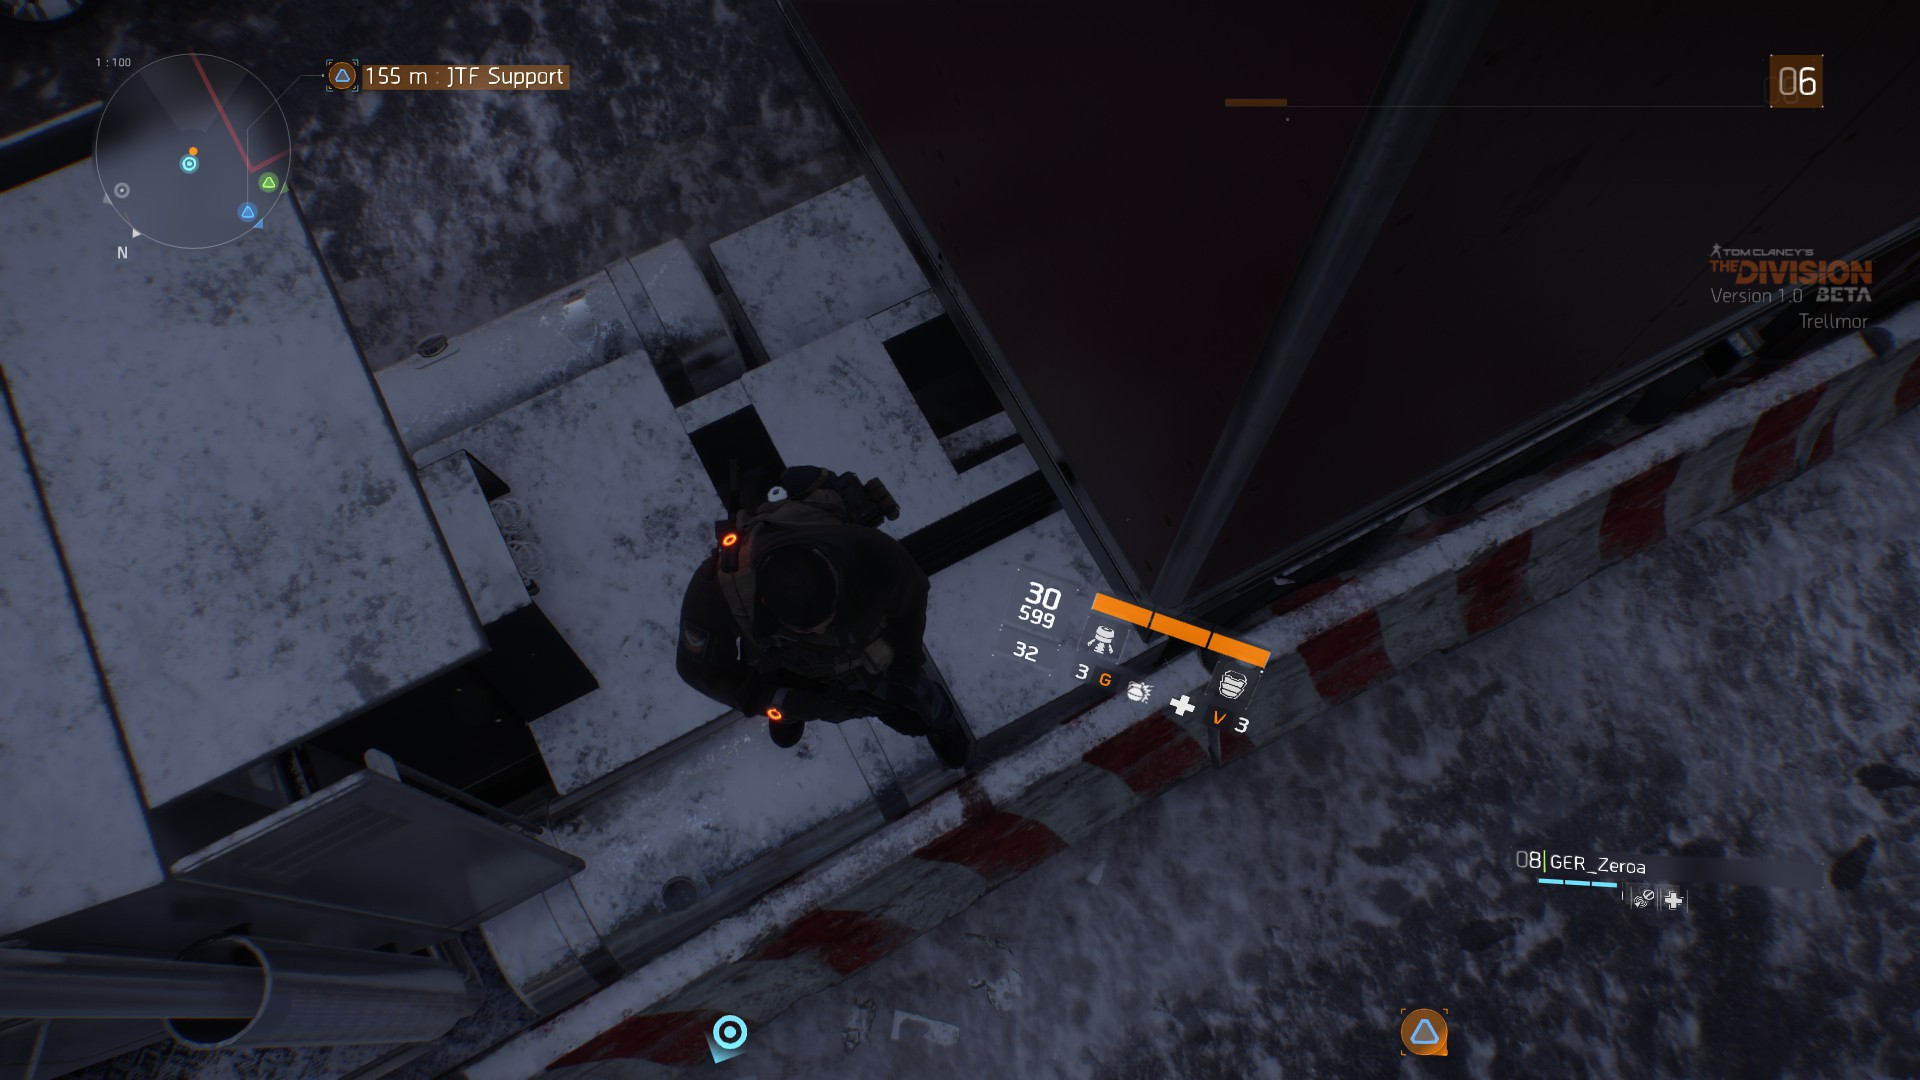 Tom Clancy's The Division Beta2016-1-30-16-48-33.jpg